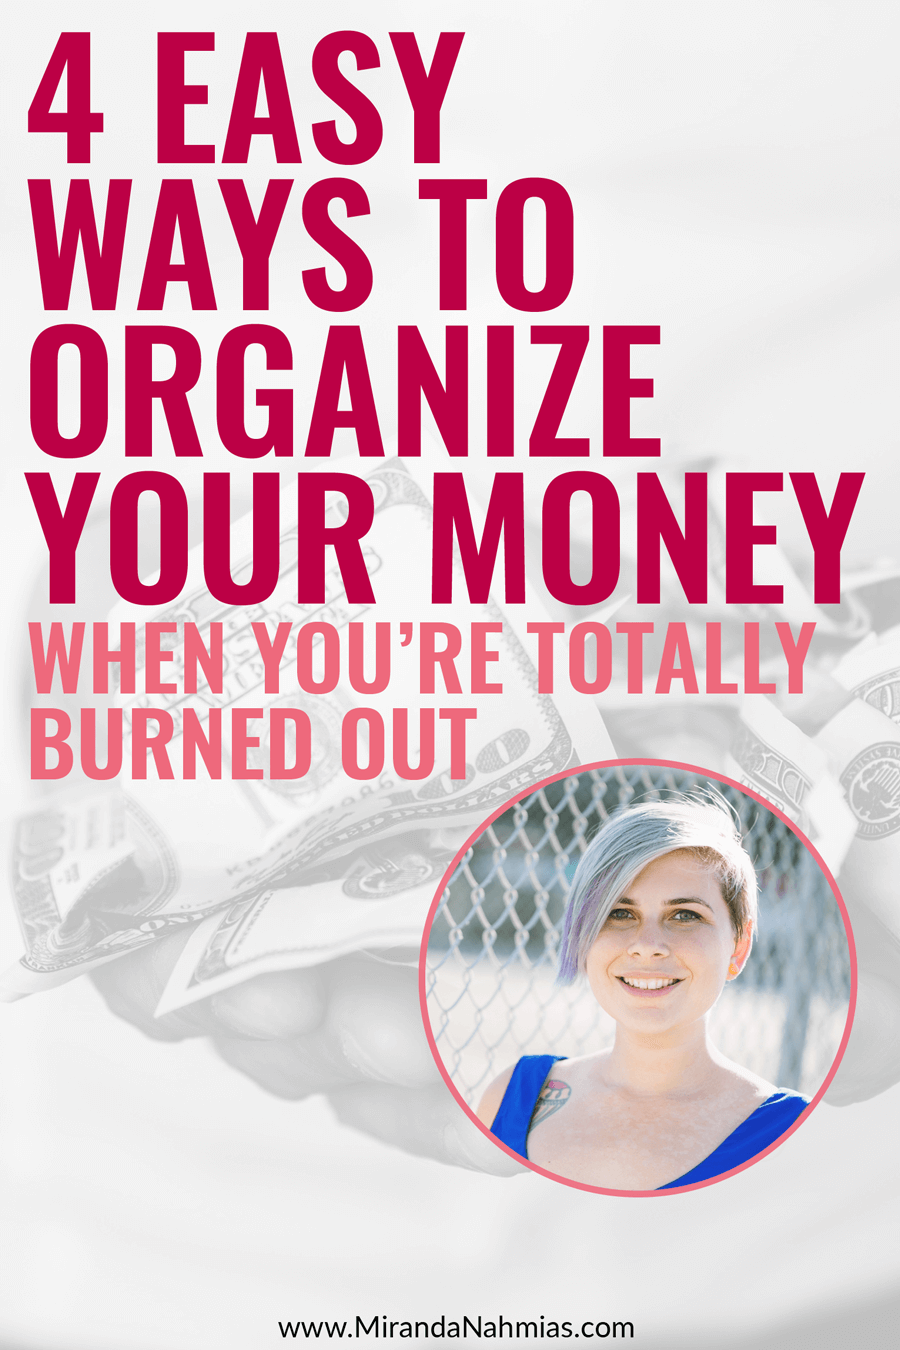 4 Easy Ways to Organize Your Money When You're Totally Burned Out // Miranda Nahmias